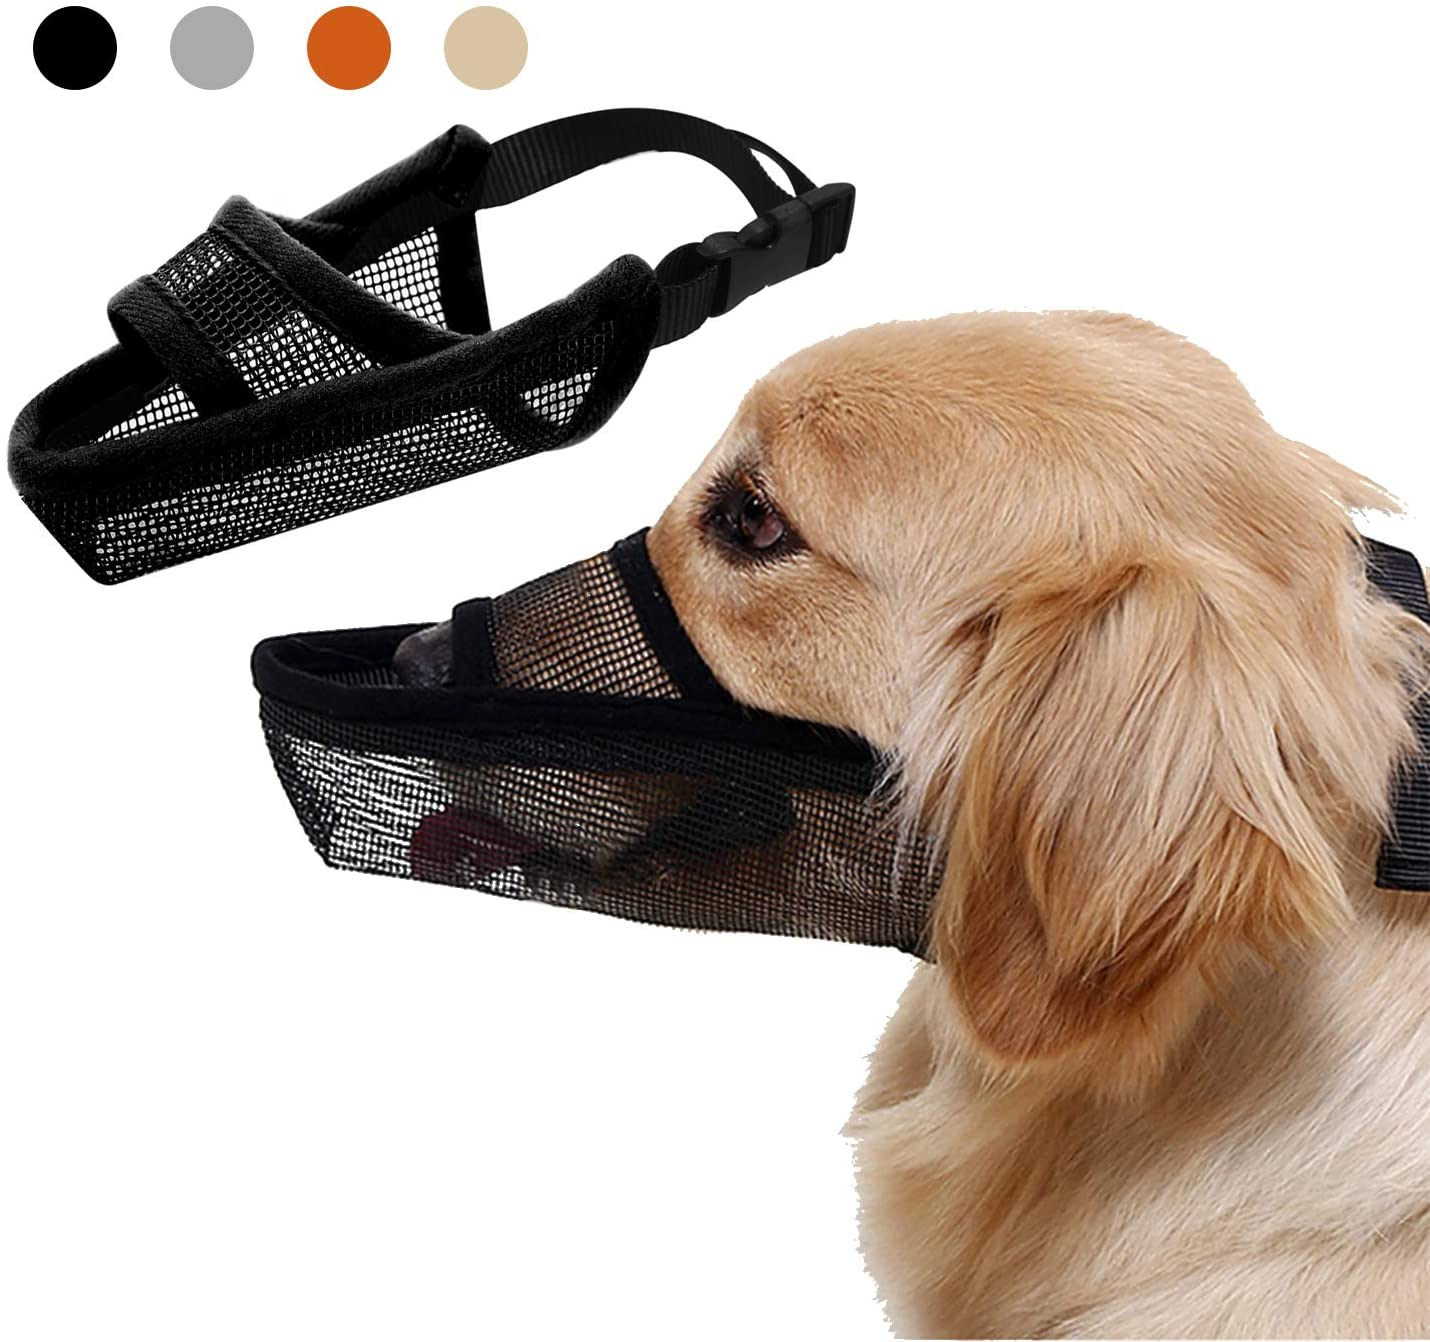 Adjustable Dog Muzzle for Small Medium Large Dogs, Mesh Breathable Pets Mouth Cover with Tongue Sticking Out, Soft Nylon Dog Mask for Anti-Biting Anti-Barking Licking